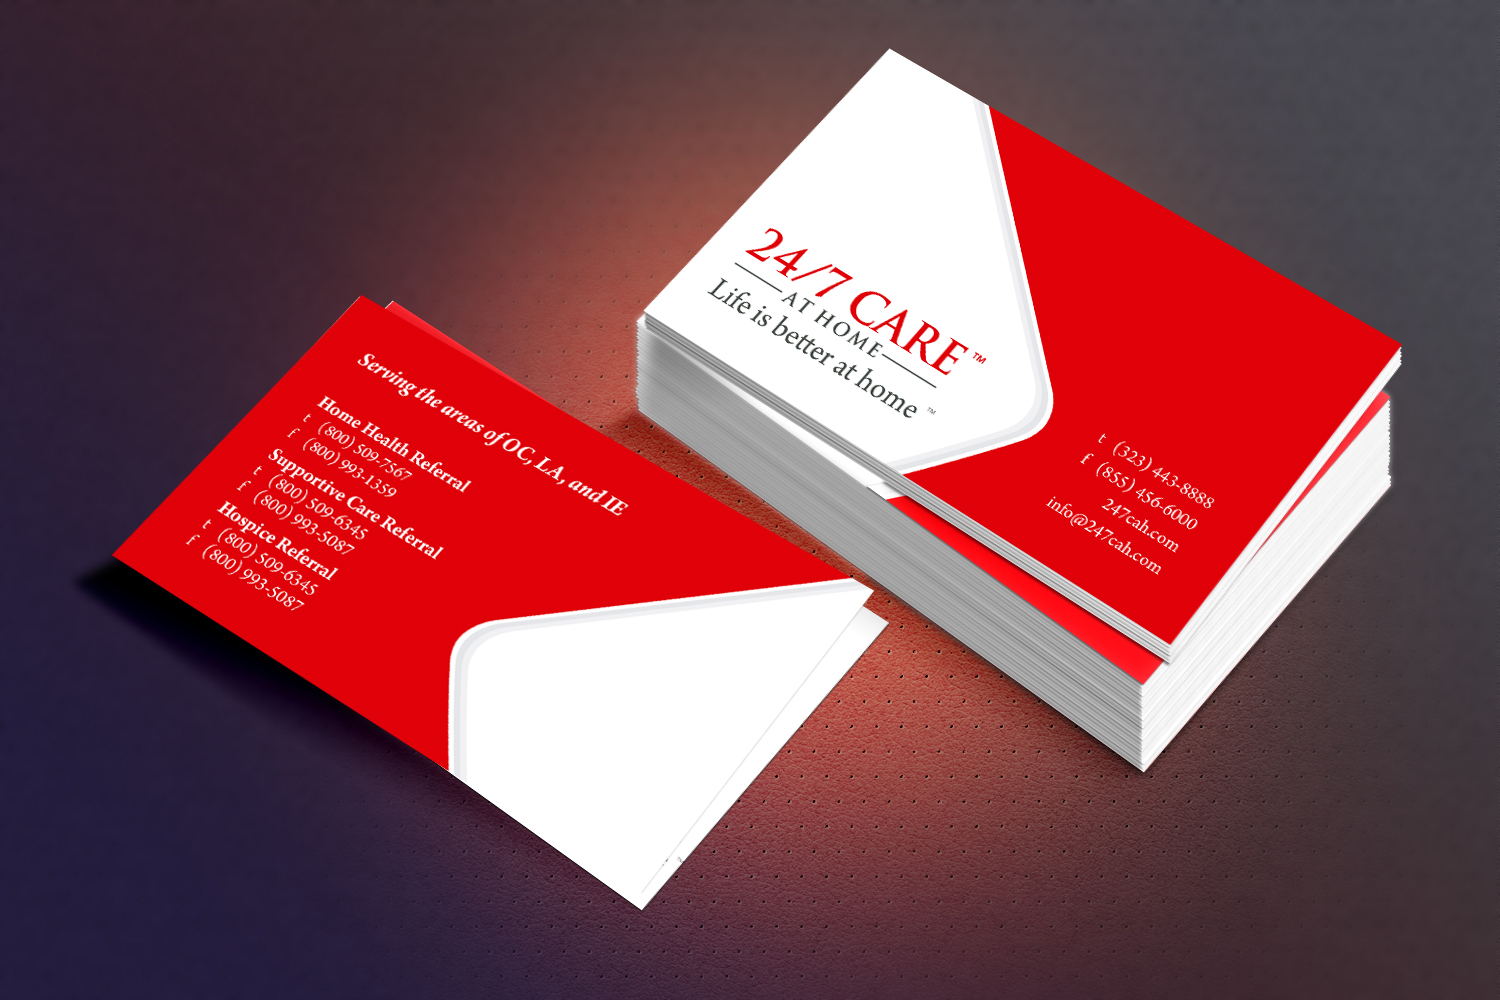 Print business cards at home business card tips print business cards at home cheaphphosting Gallery